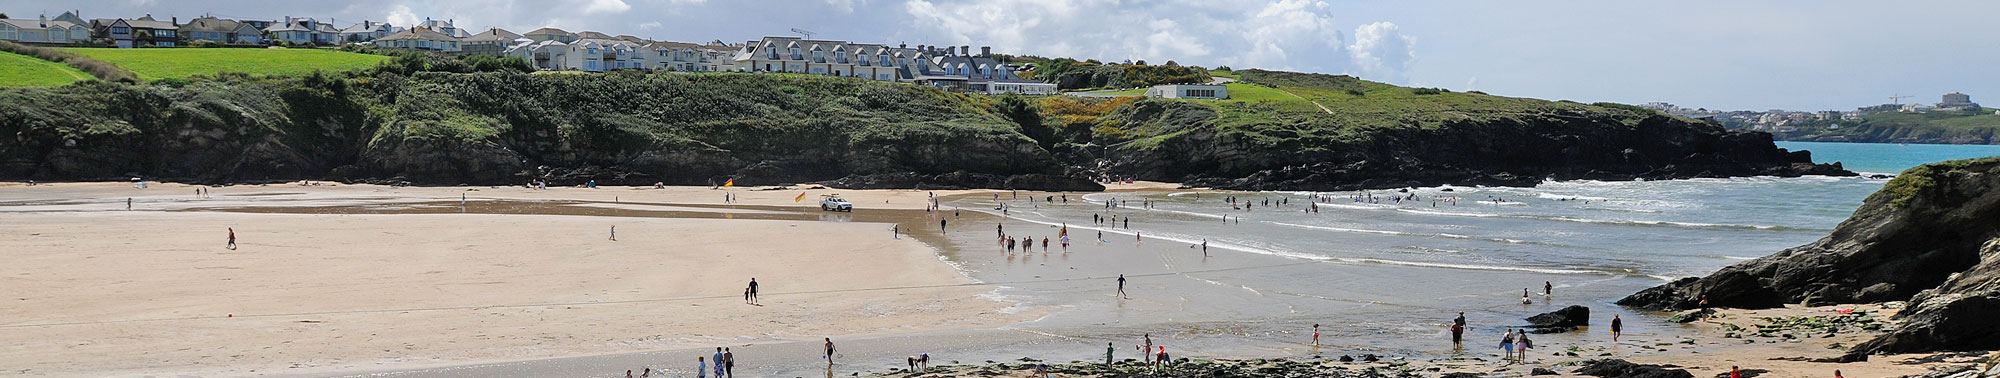 Porth Beach near Newquay Cornwall